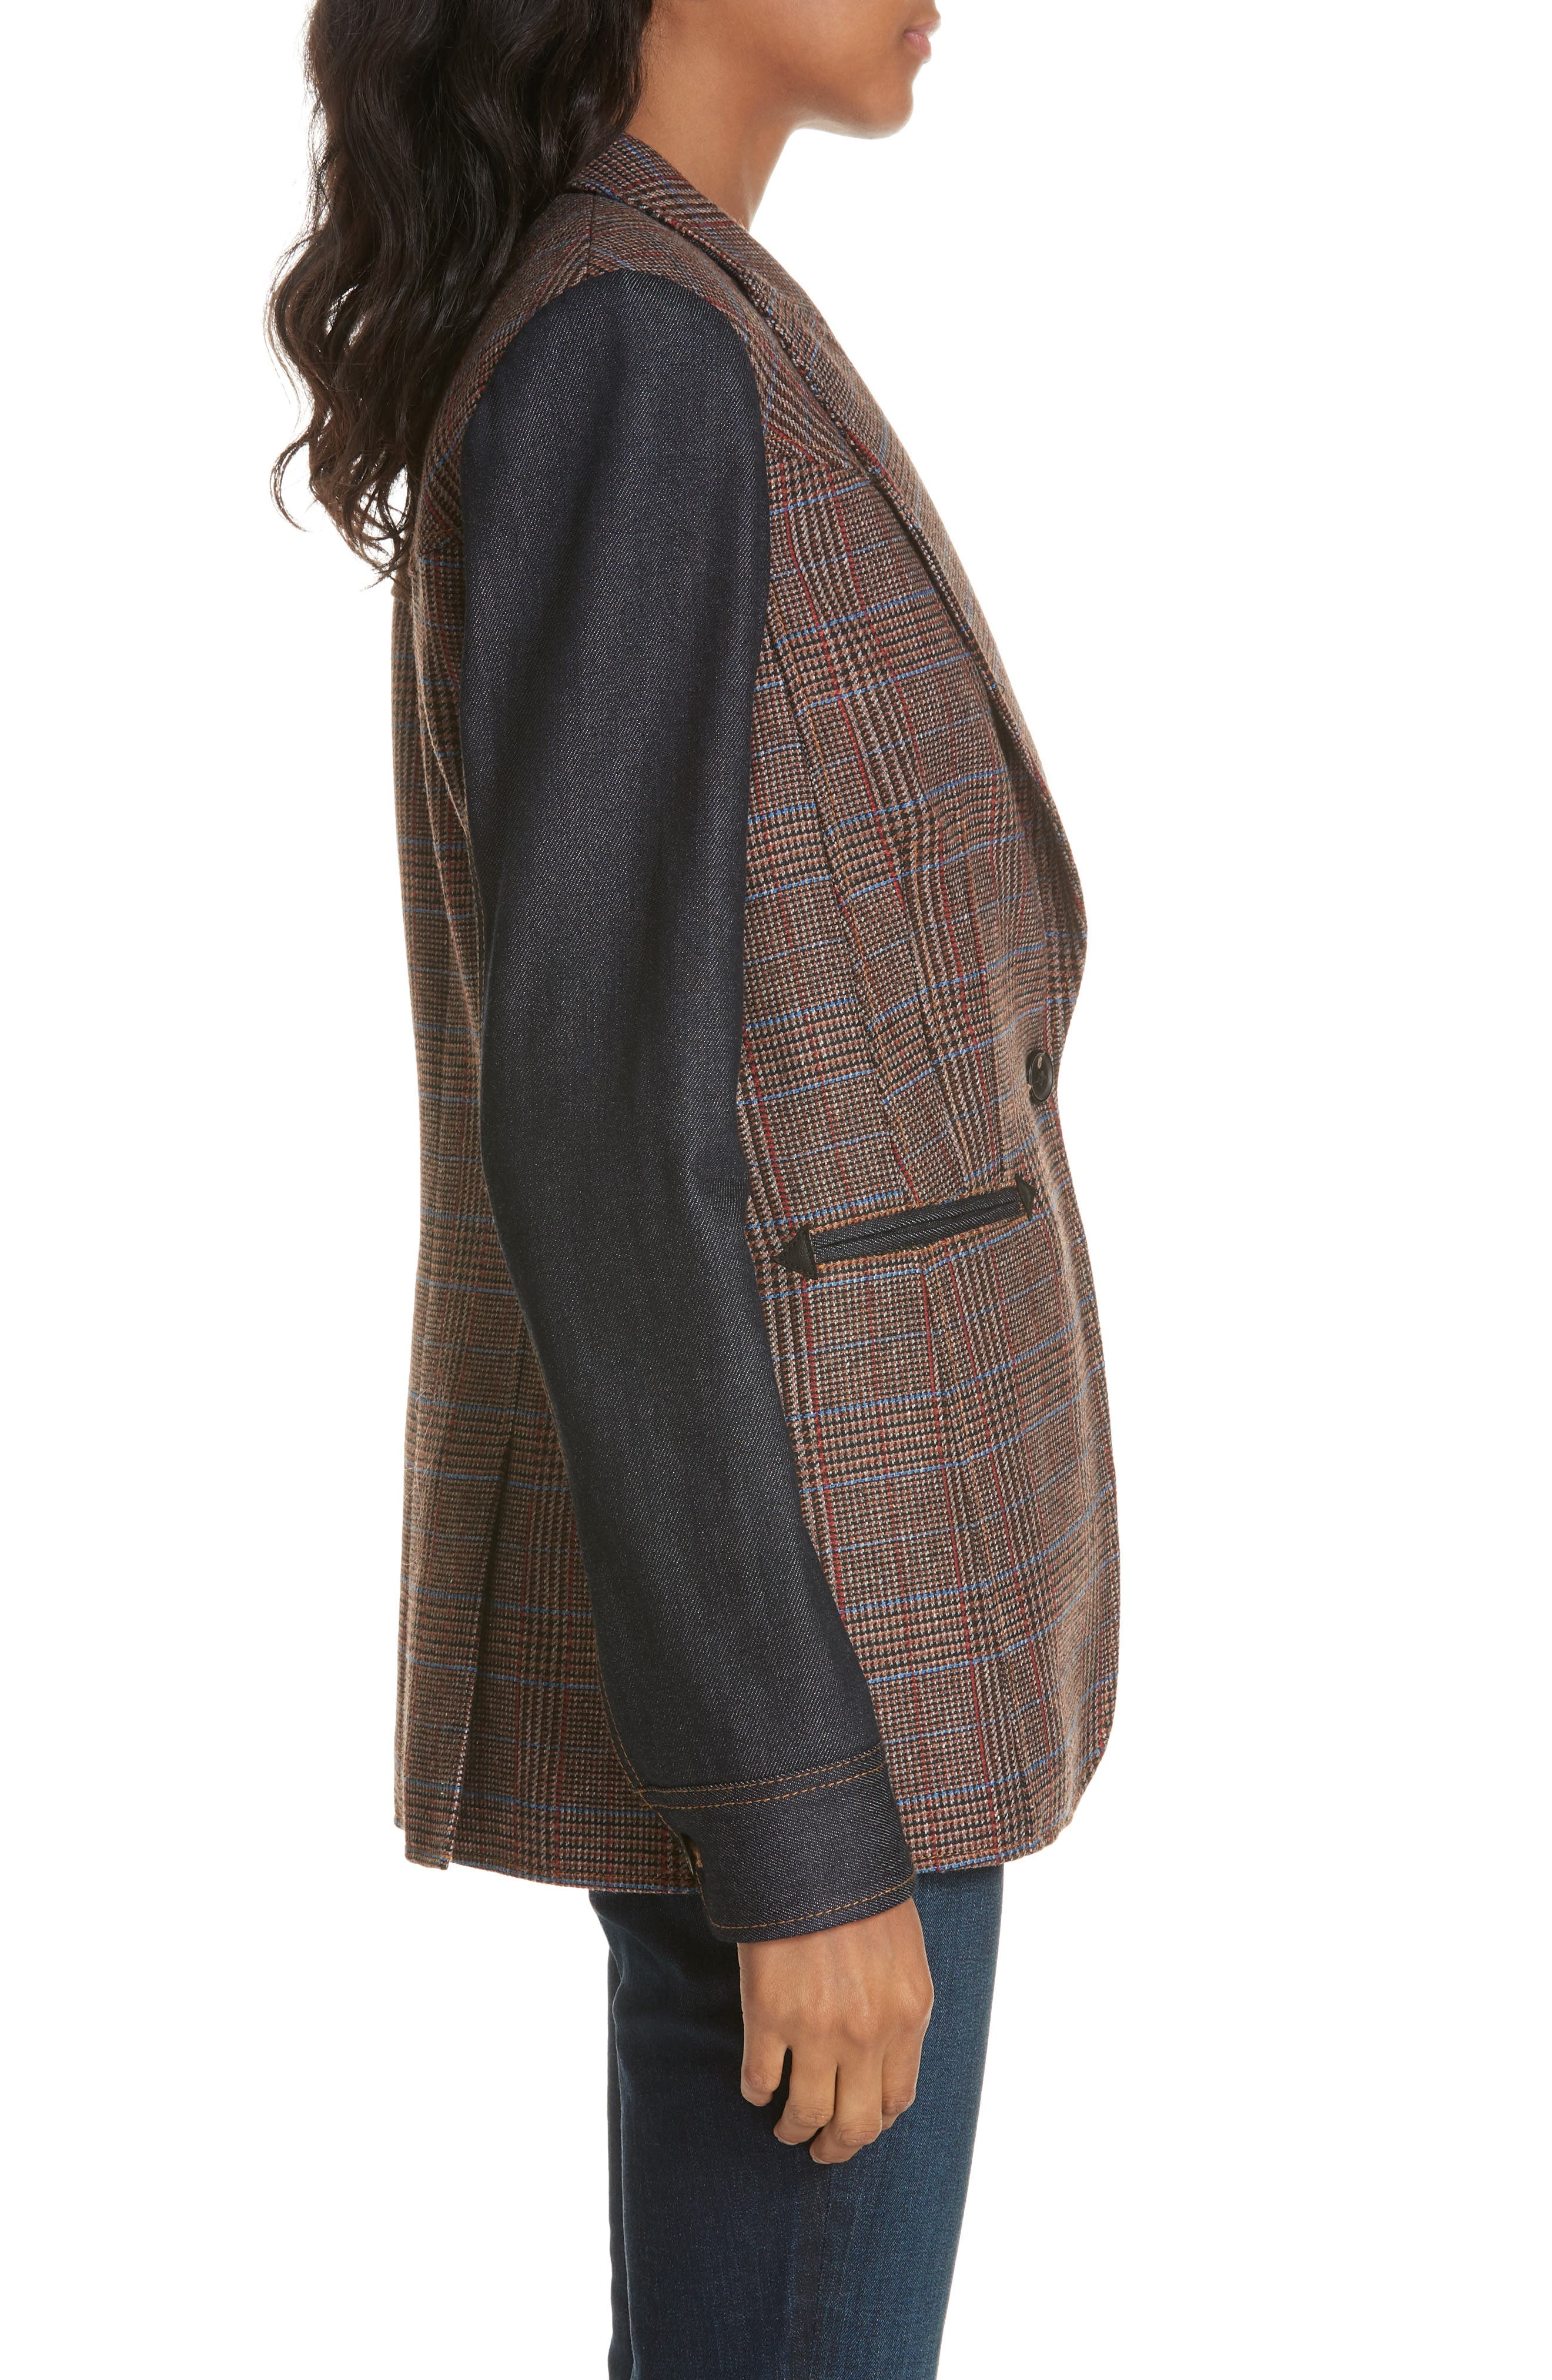 Mela Denim Sleeve Dickey Jacket,                             Alternate thumbnail 3, color,                             BROWN/ ORANGE